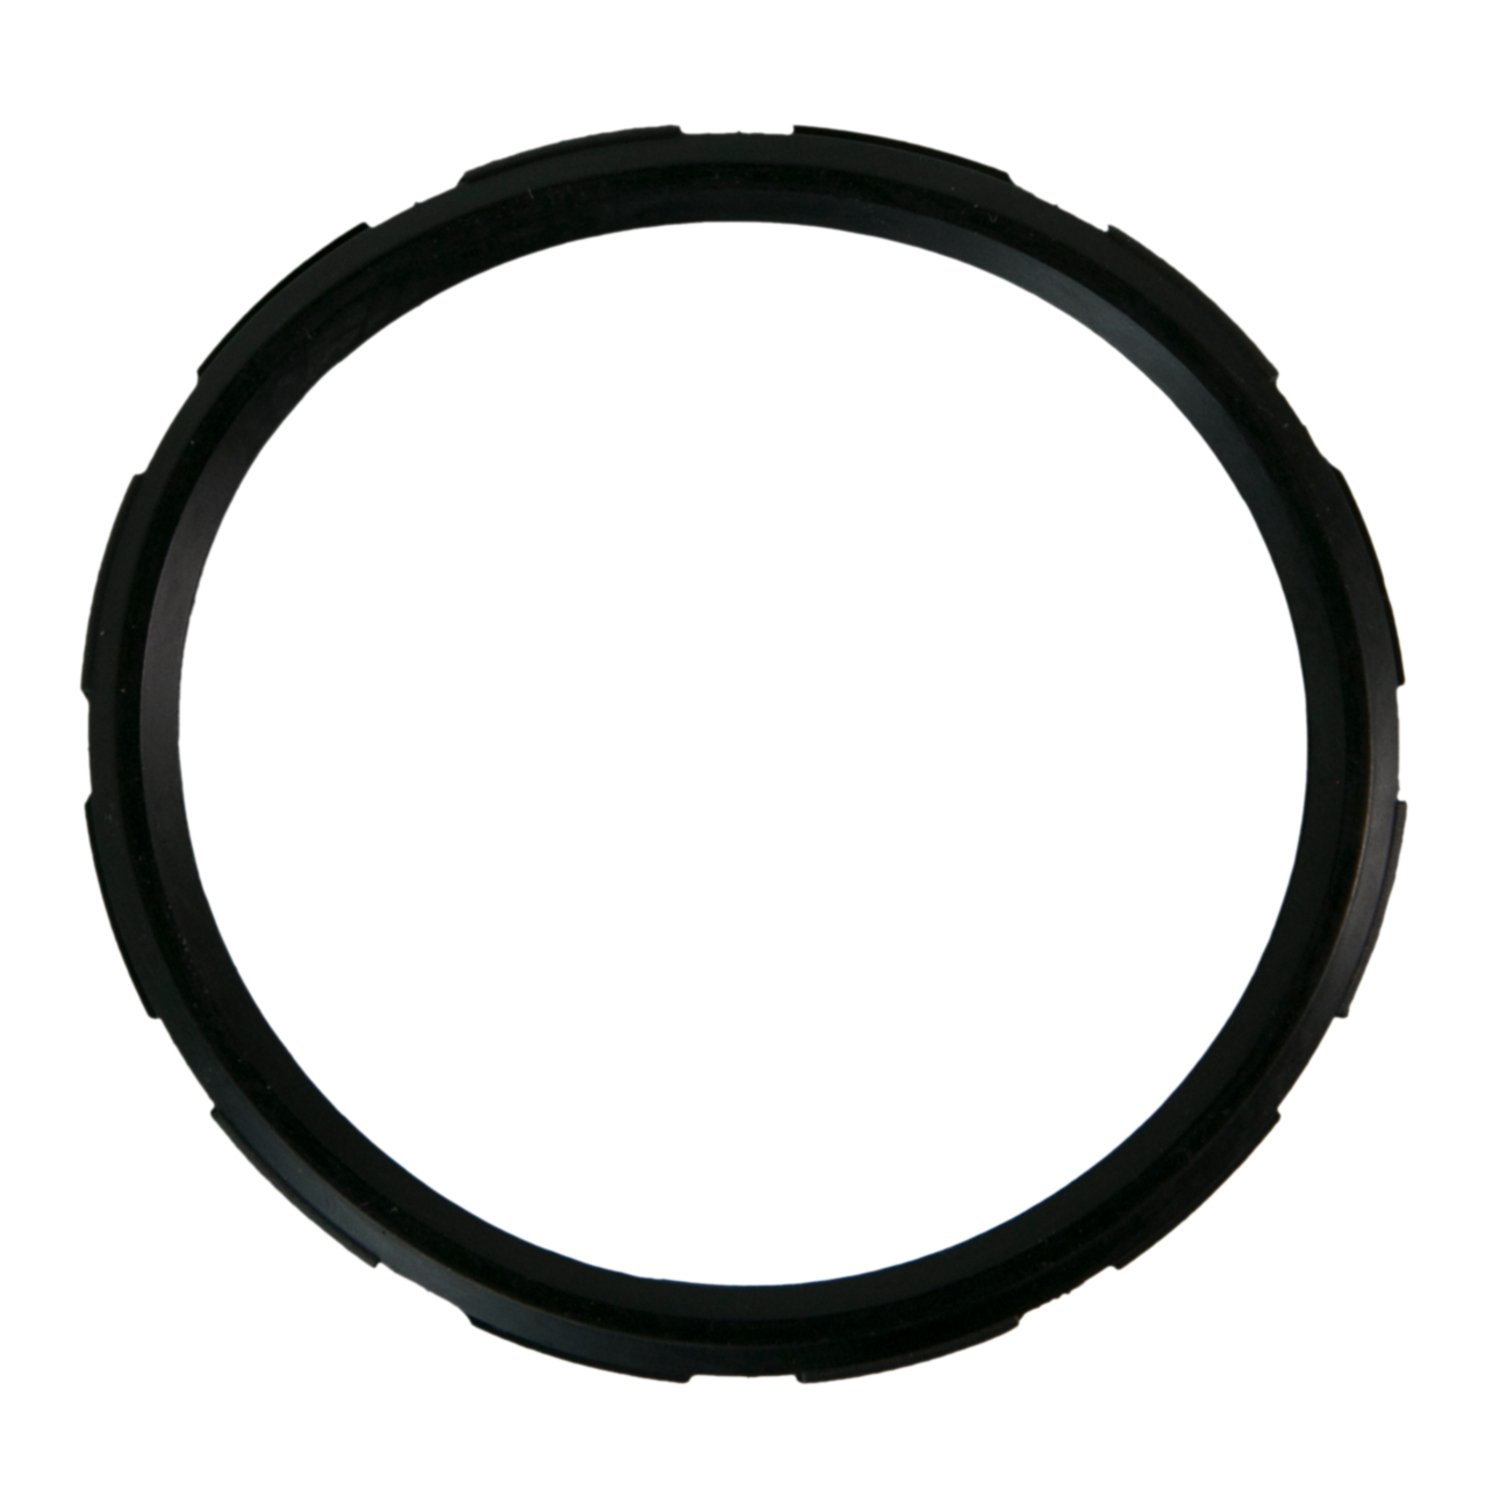 hight resolution of 2012 nissan versa engine coolant outlet gasket fp 36028